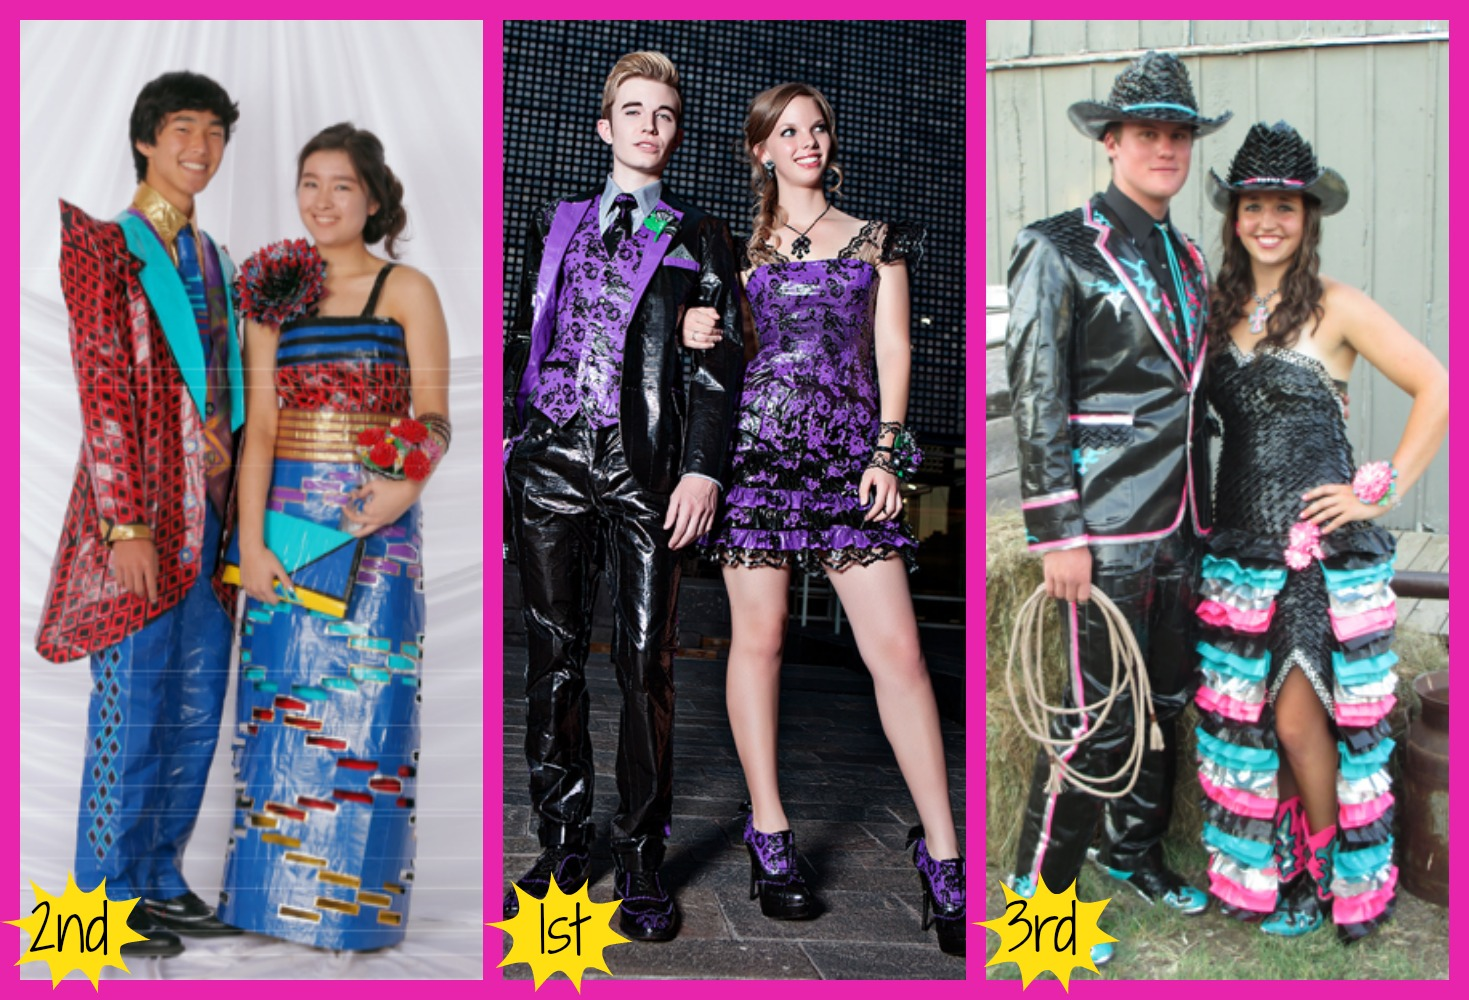 Duct tape prom dress 2013